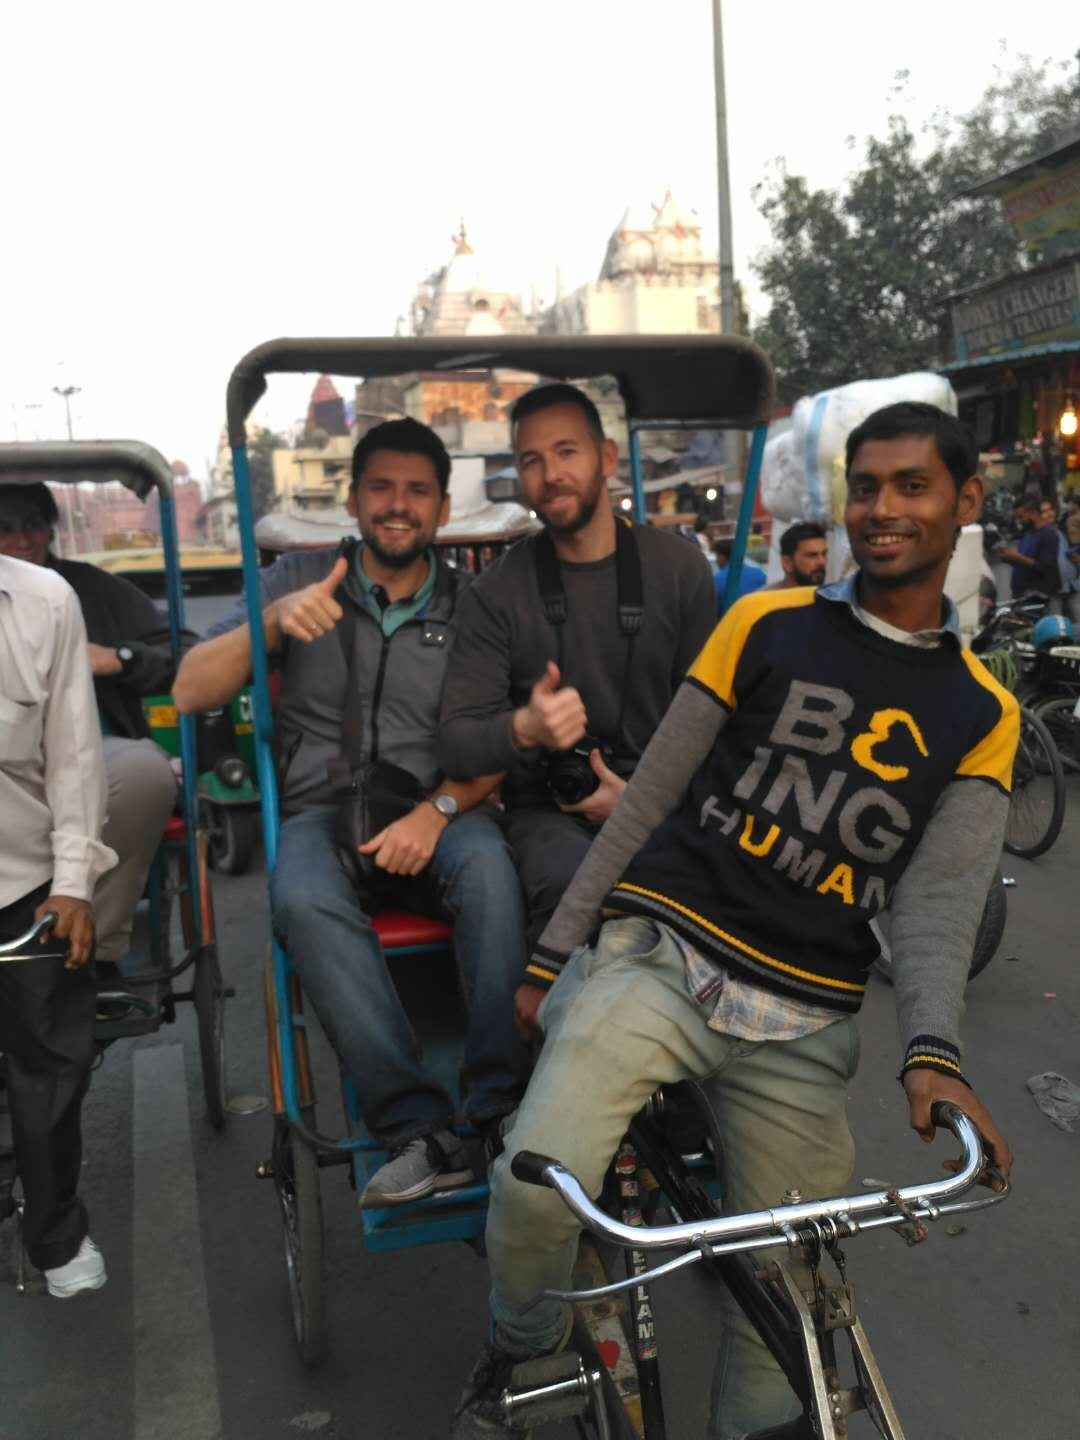 India Delhi Bazar Chandni Chowk - Travel tips for India and country's curiosities